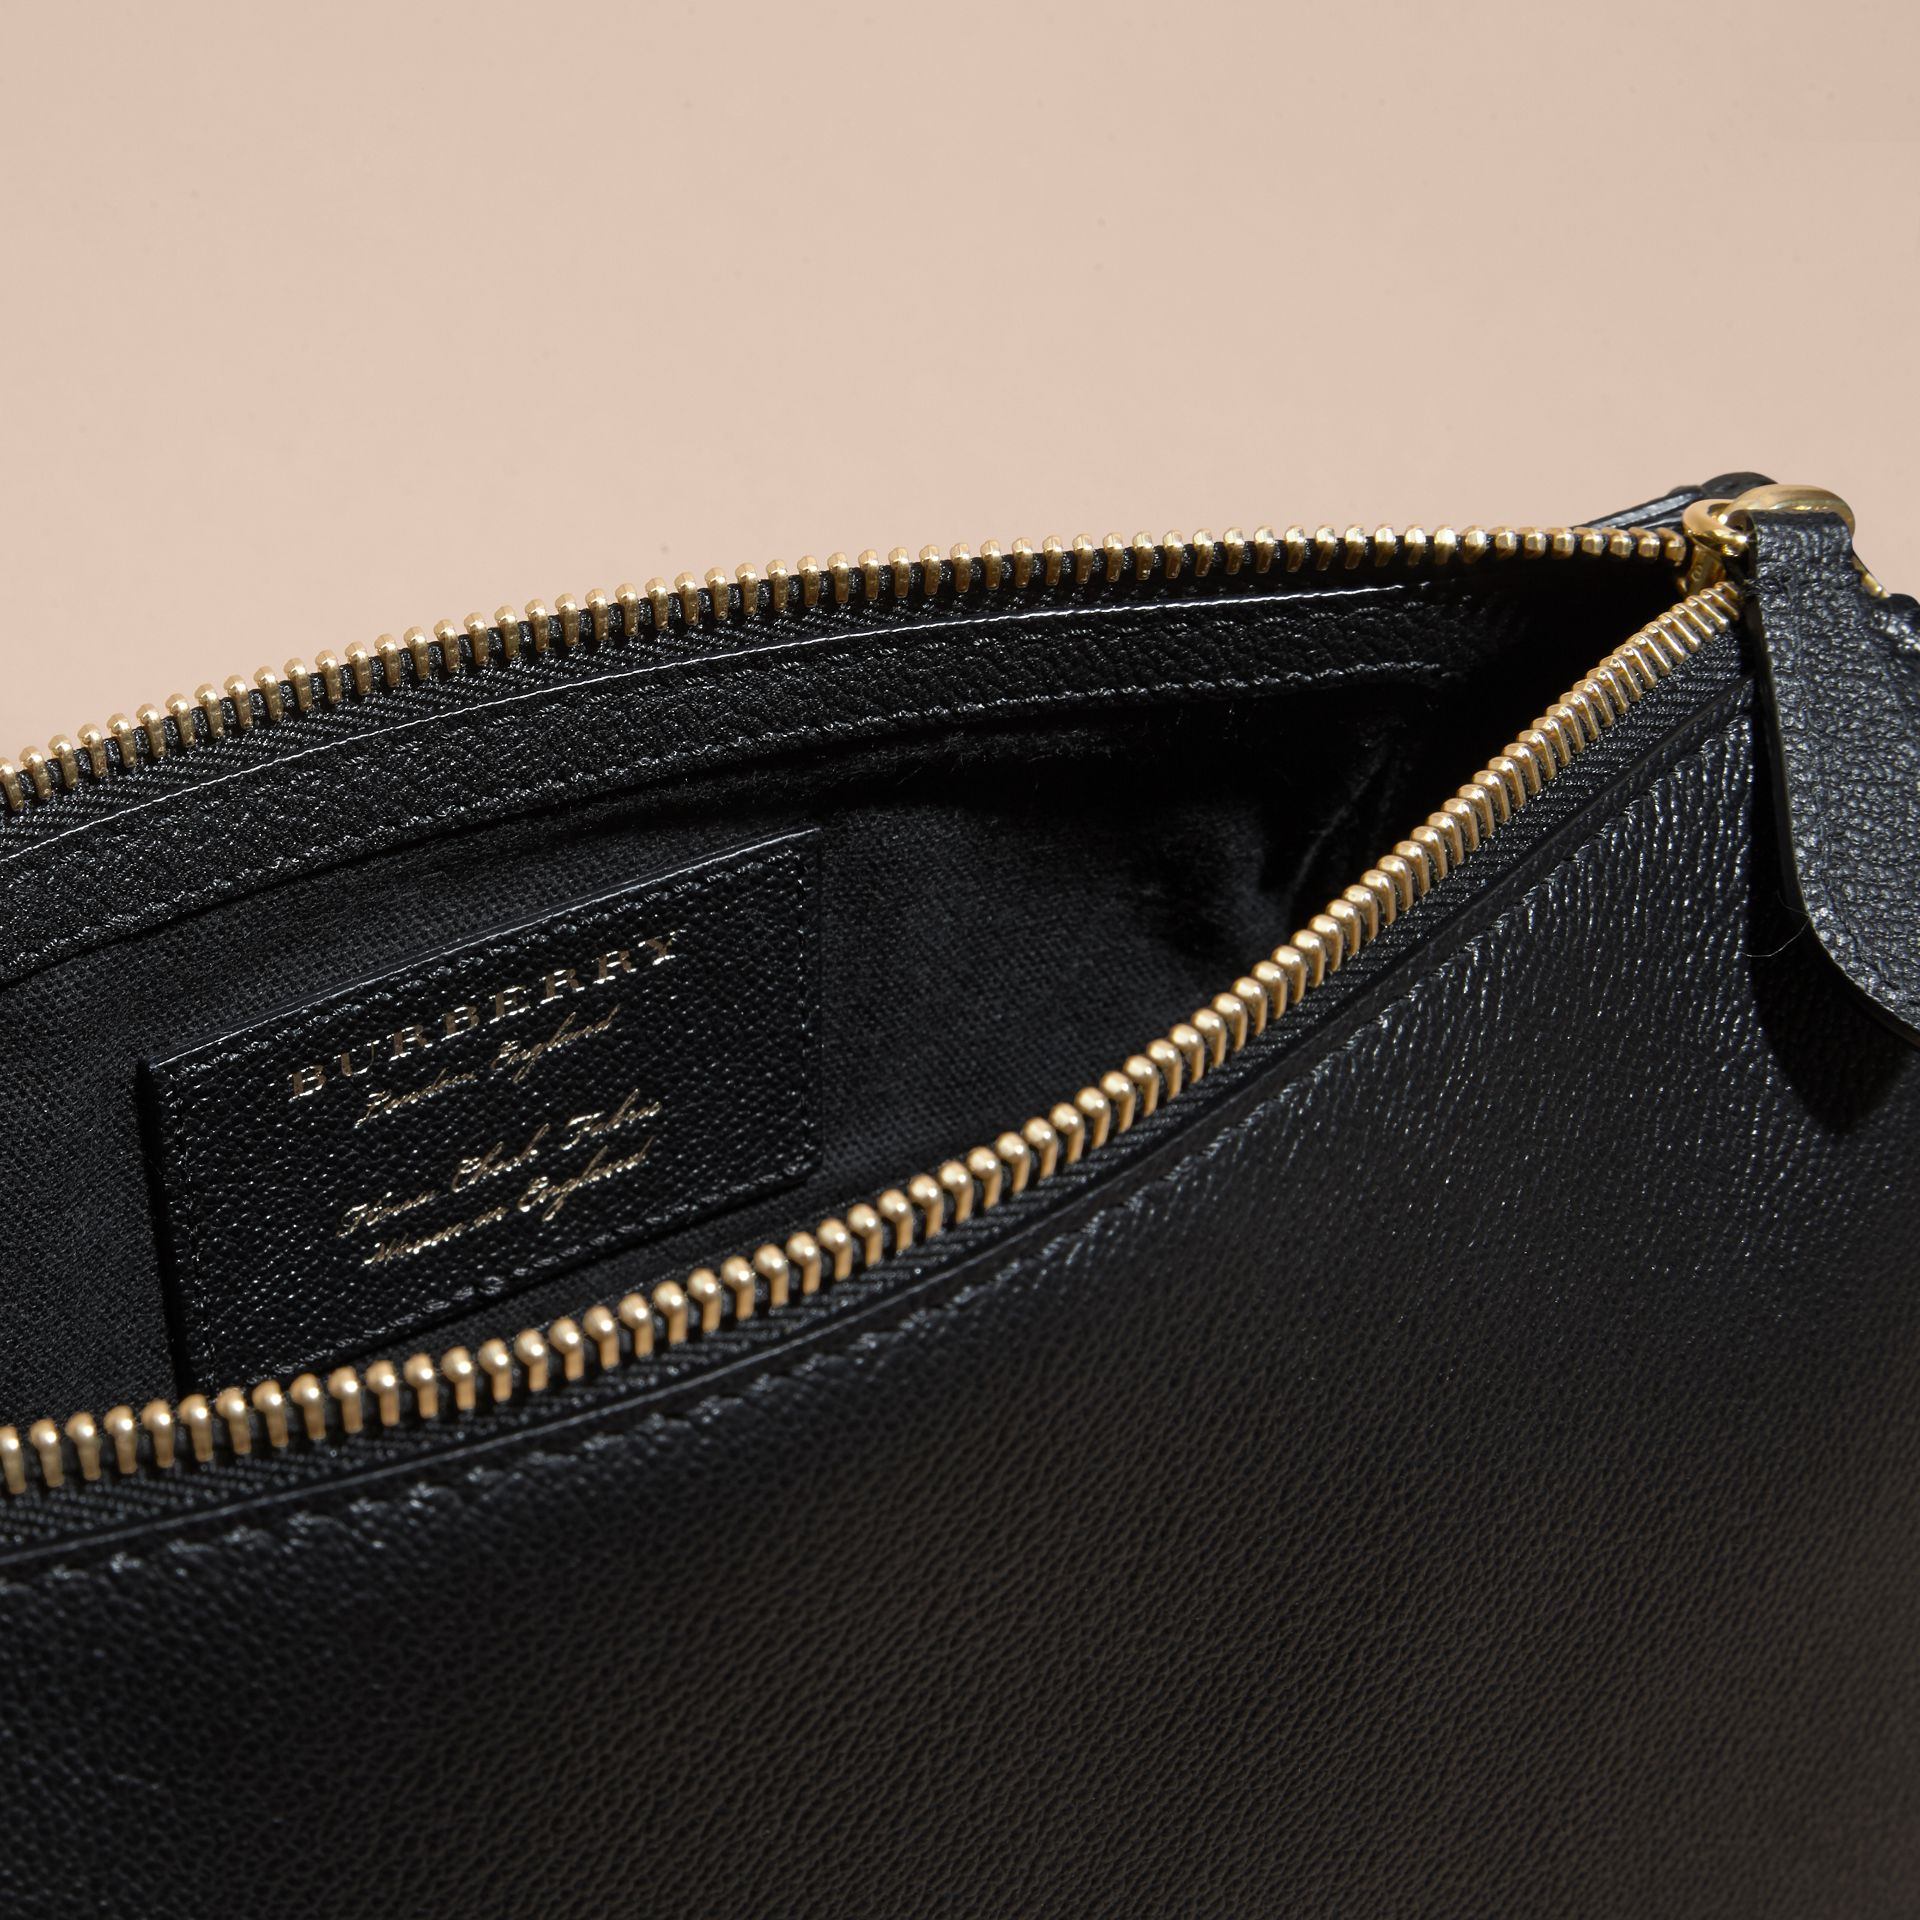 Buckle Detail Leather and House Check Crossbody Bag in Black - Women | Burberry - gallery image 5